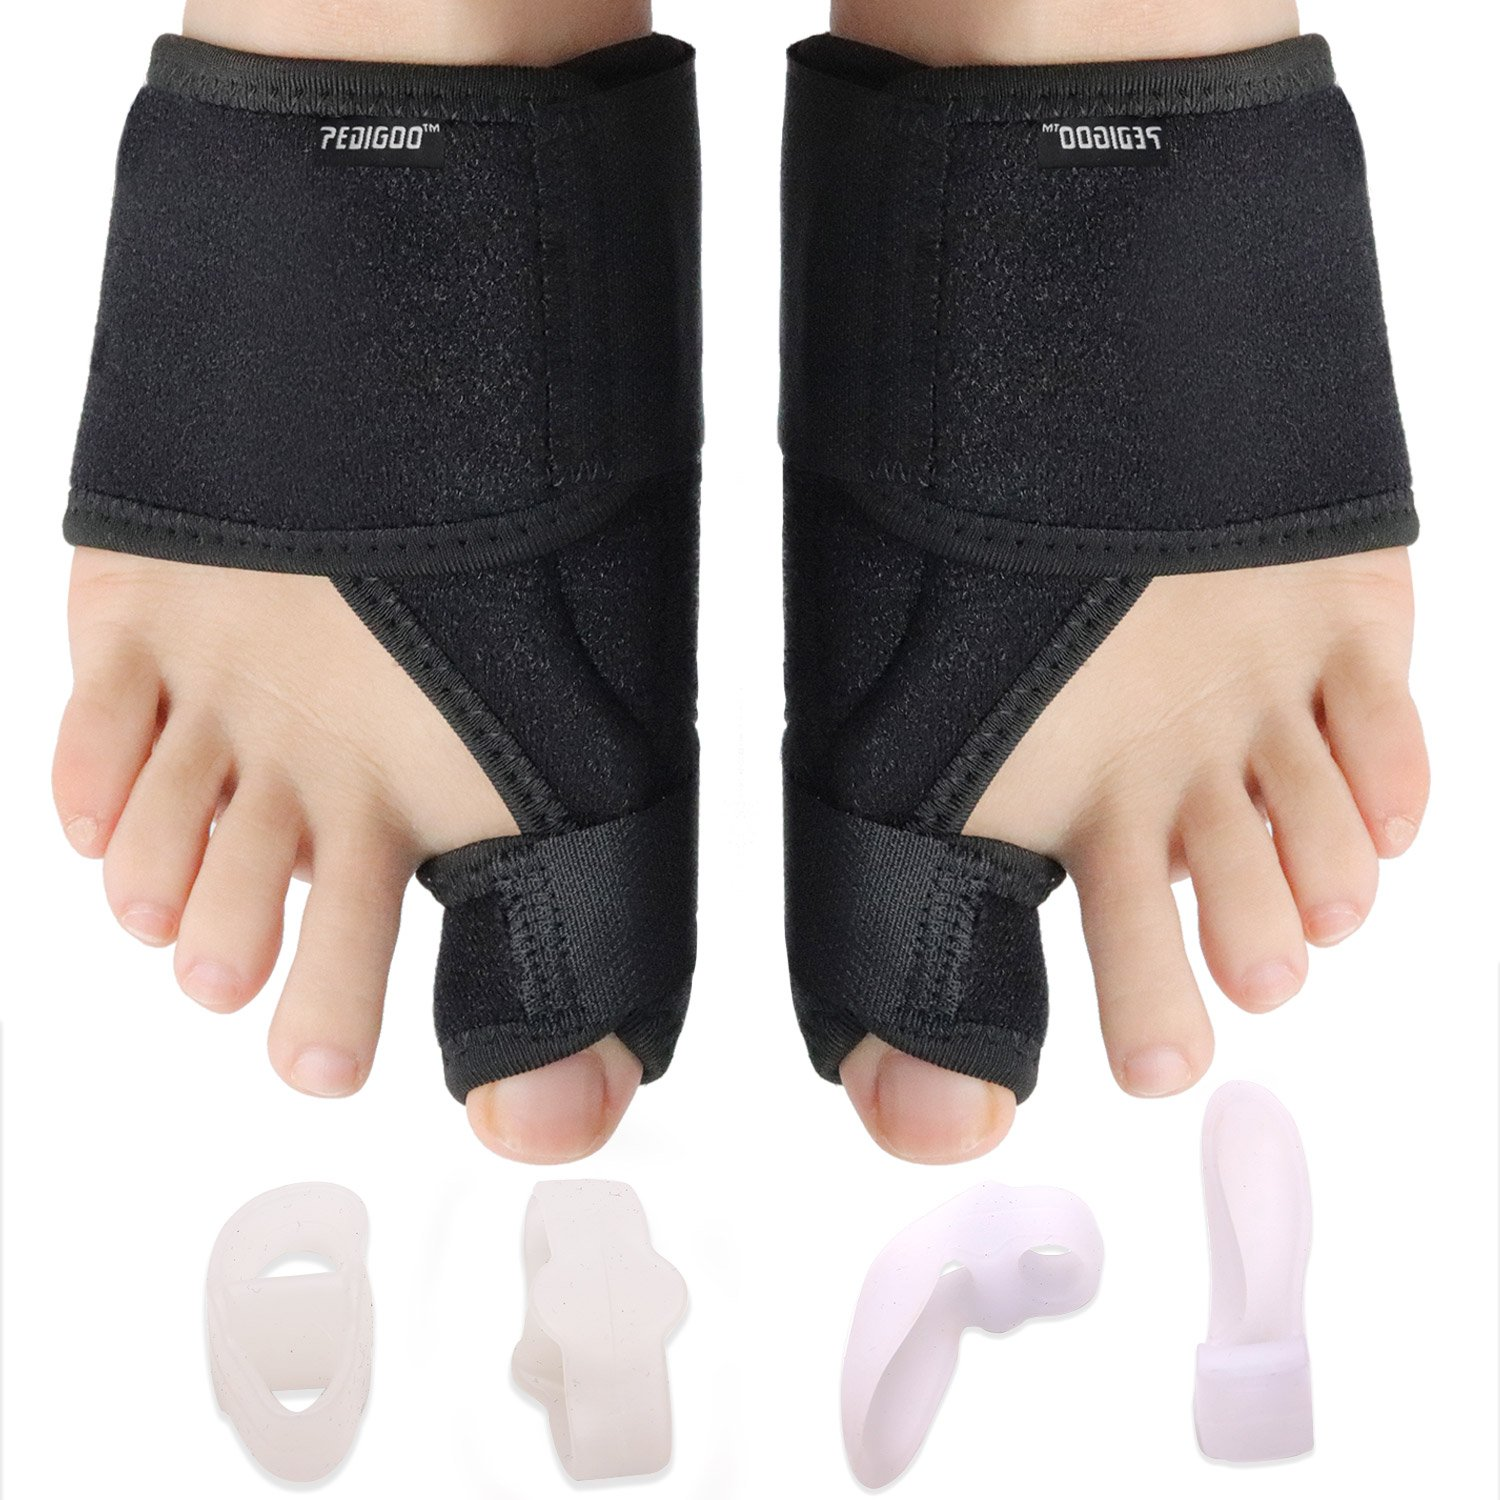 Bunion Corrector Bunion Relief Kit (Bunion Splints,Gel Toe Protect Separator Sleeves&Toe Separators) for Hallux Valgus-Day/Night Time Support for Men&Women (S-M (Size 4-7), Classic II)